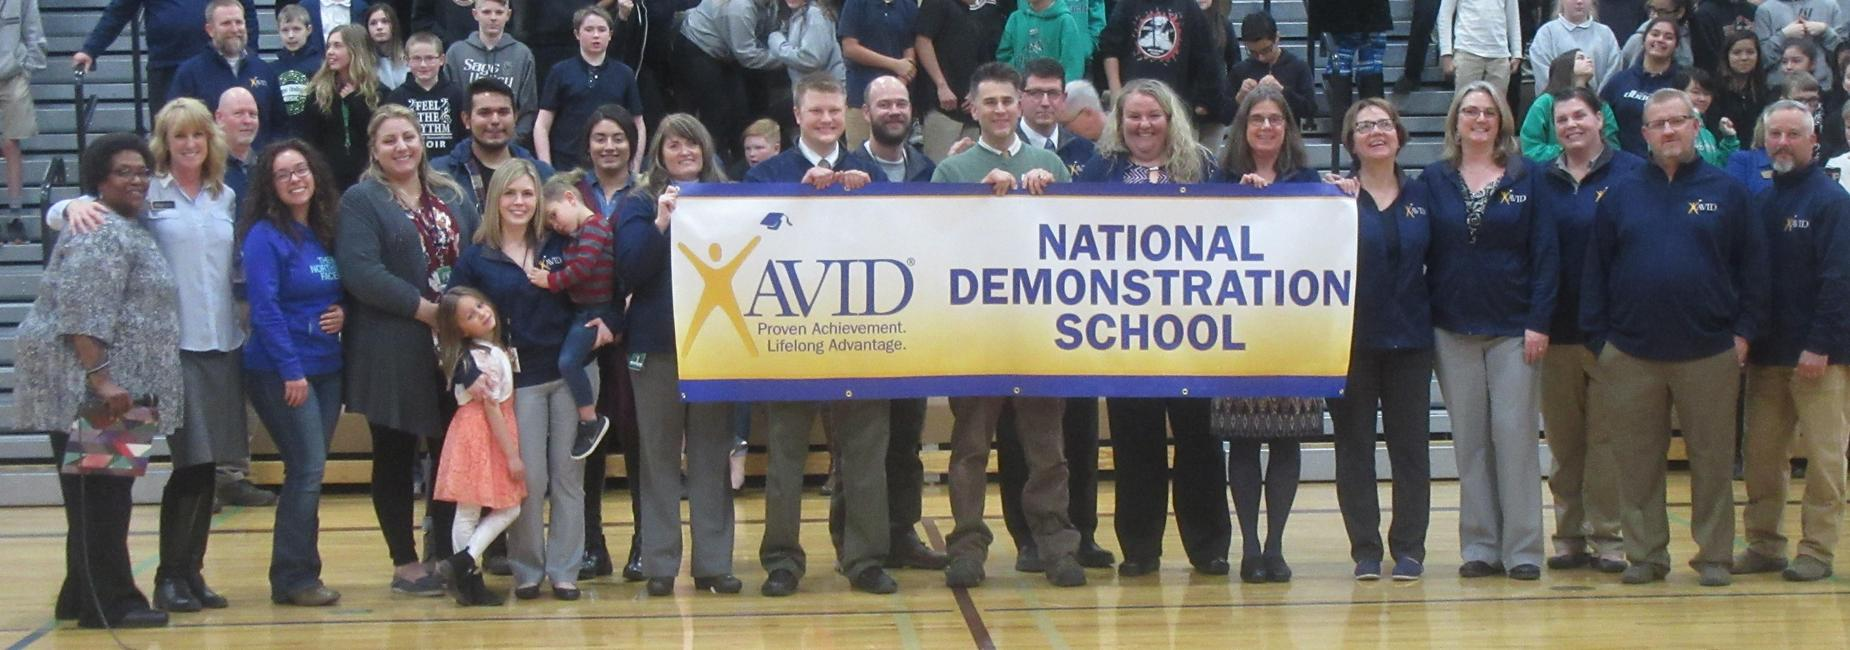 AVID Demonstration School